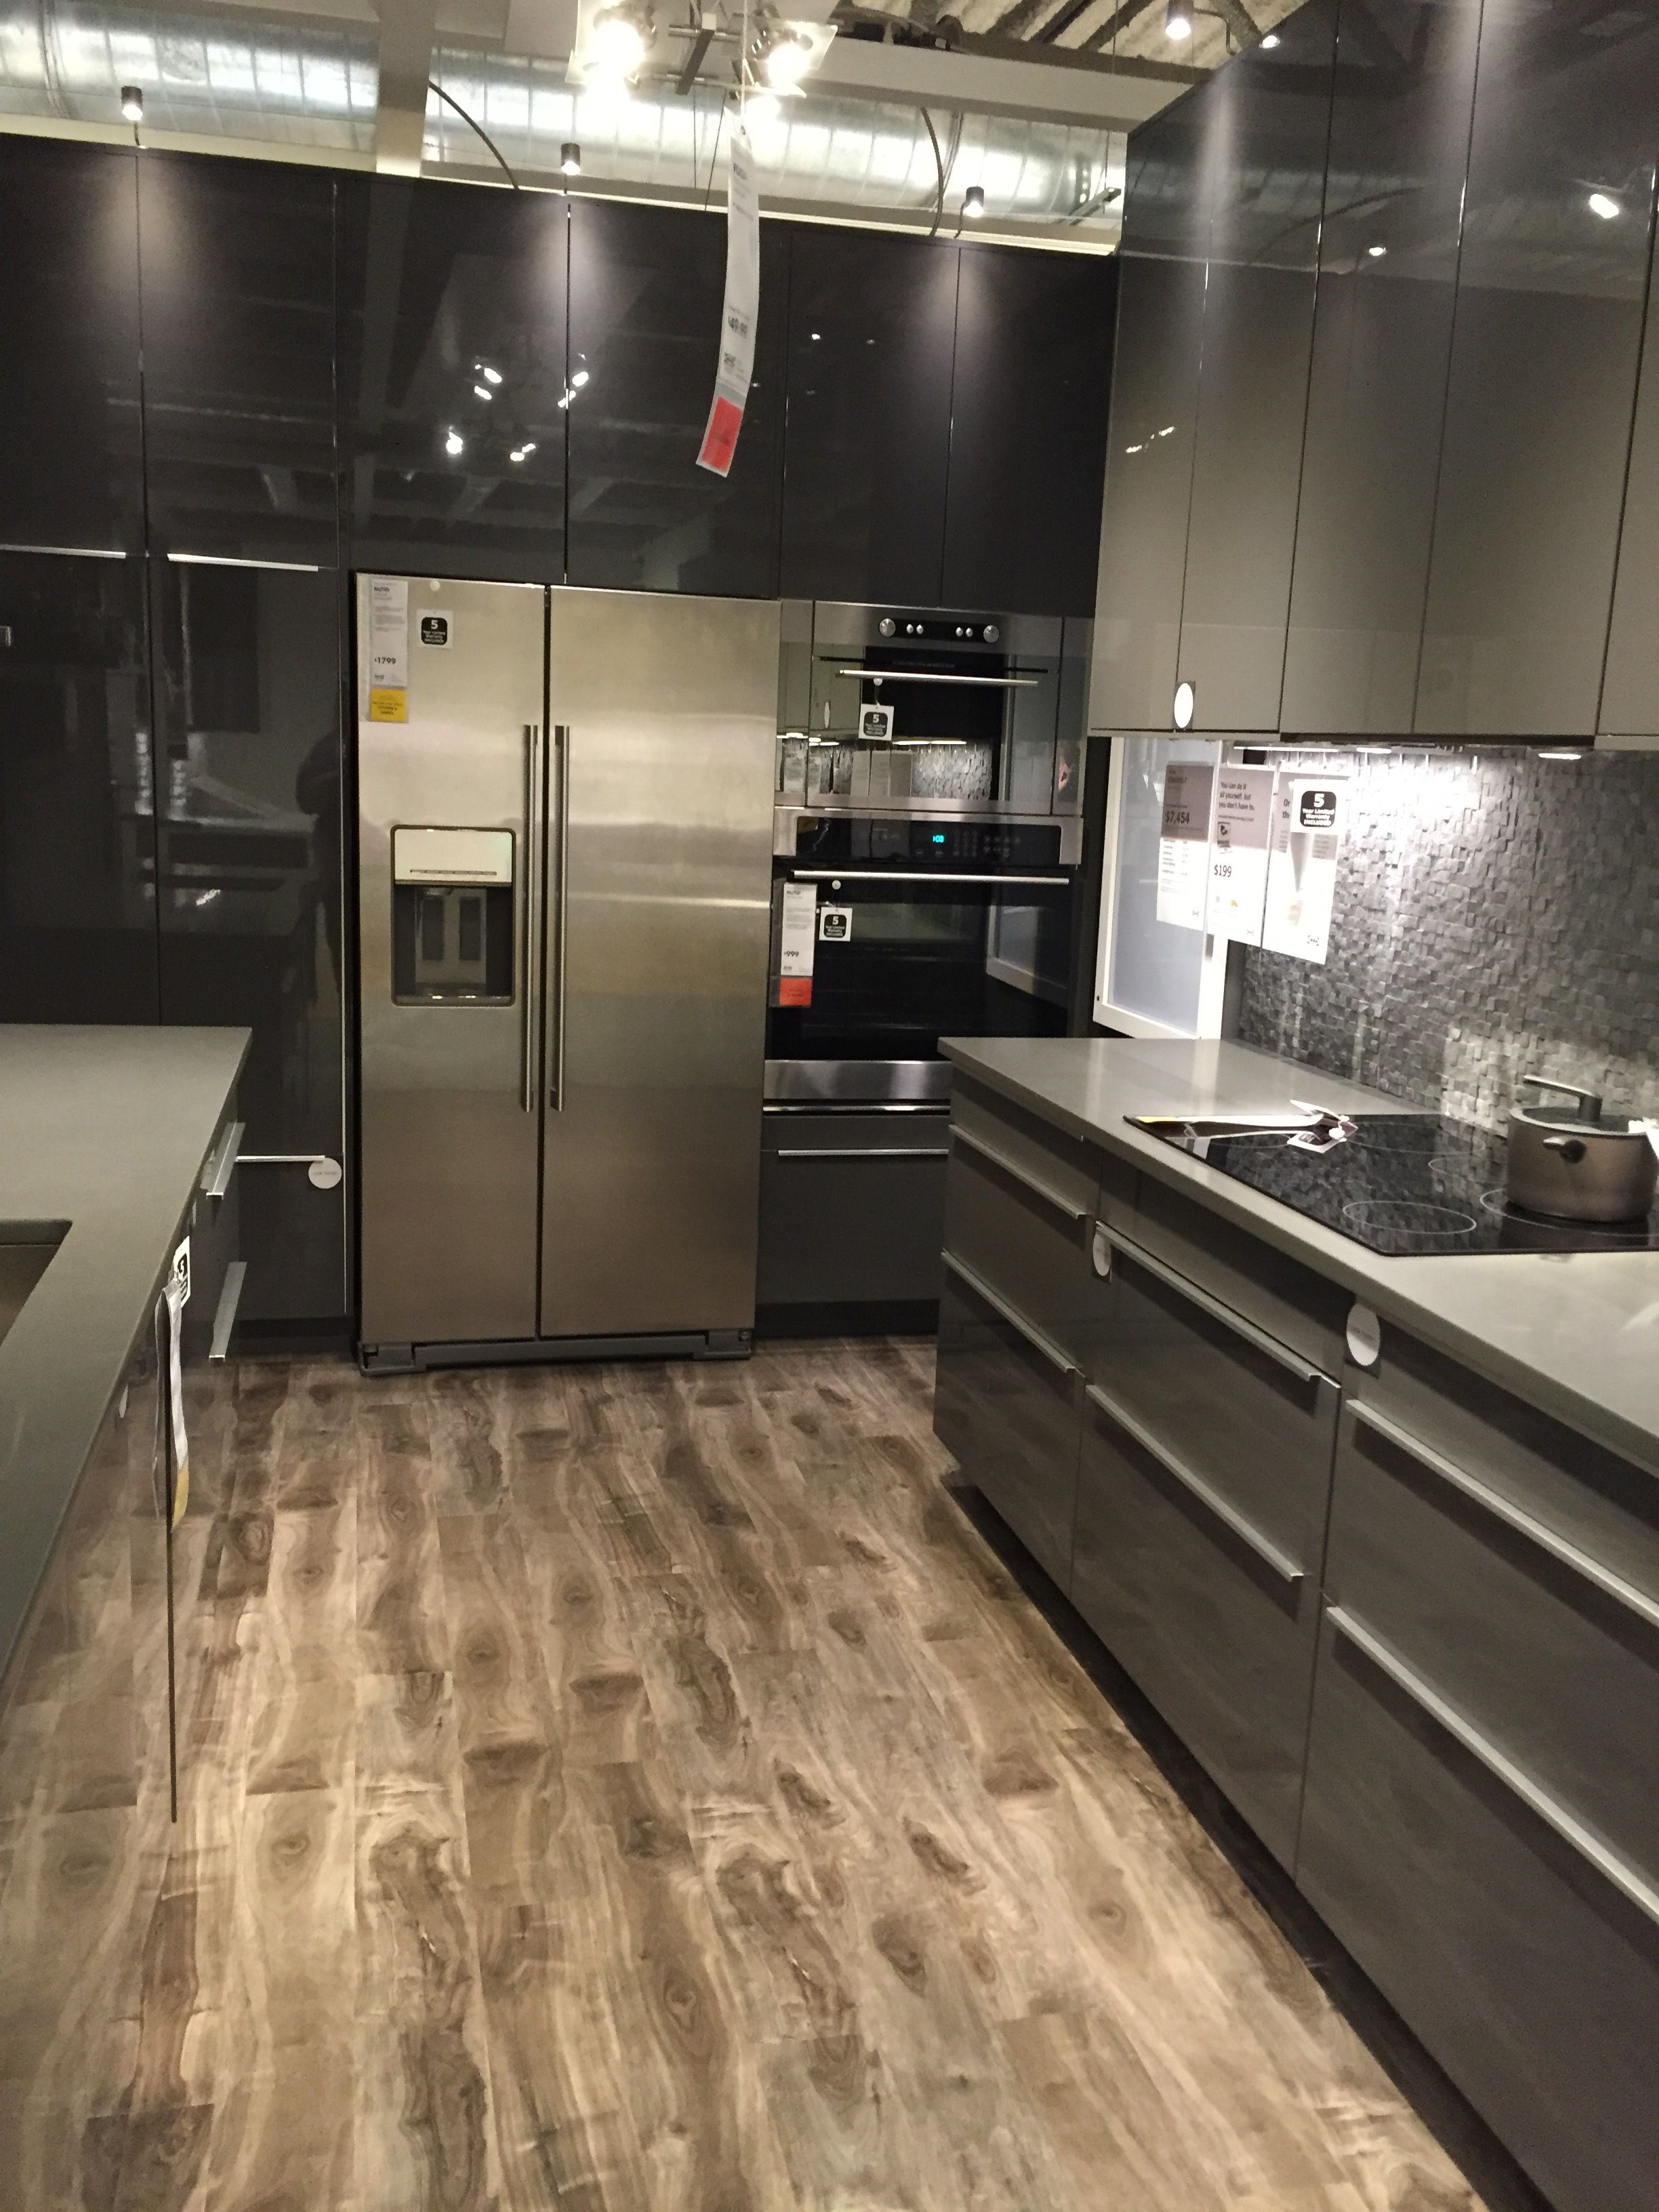 ikea cabinets sektion with ringhult fronts in shiny grey also wood tone floor kitchen on kitchen interior grey wood id=46515